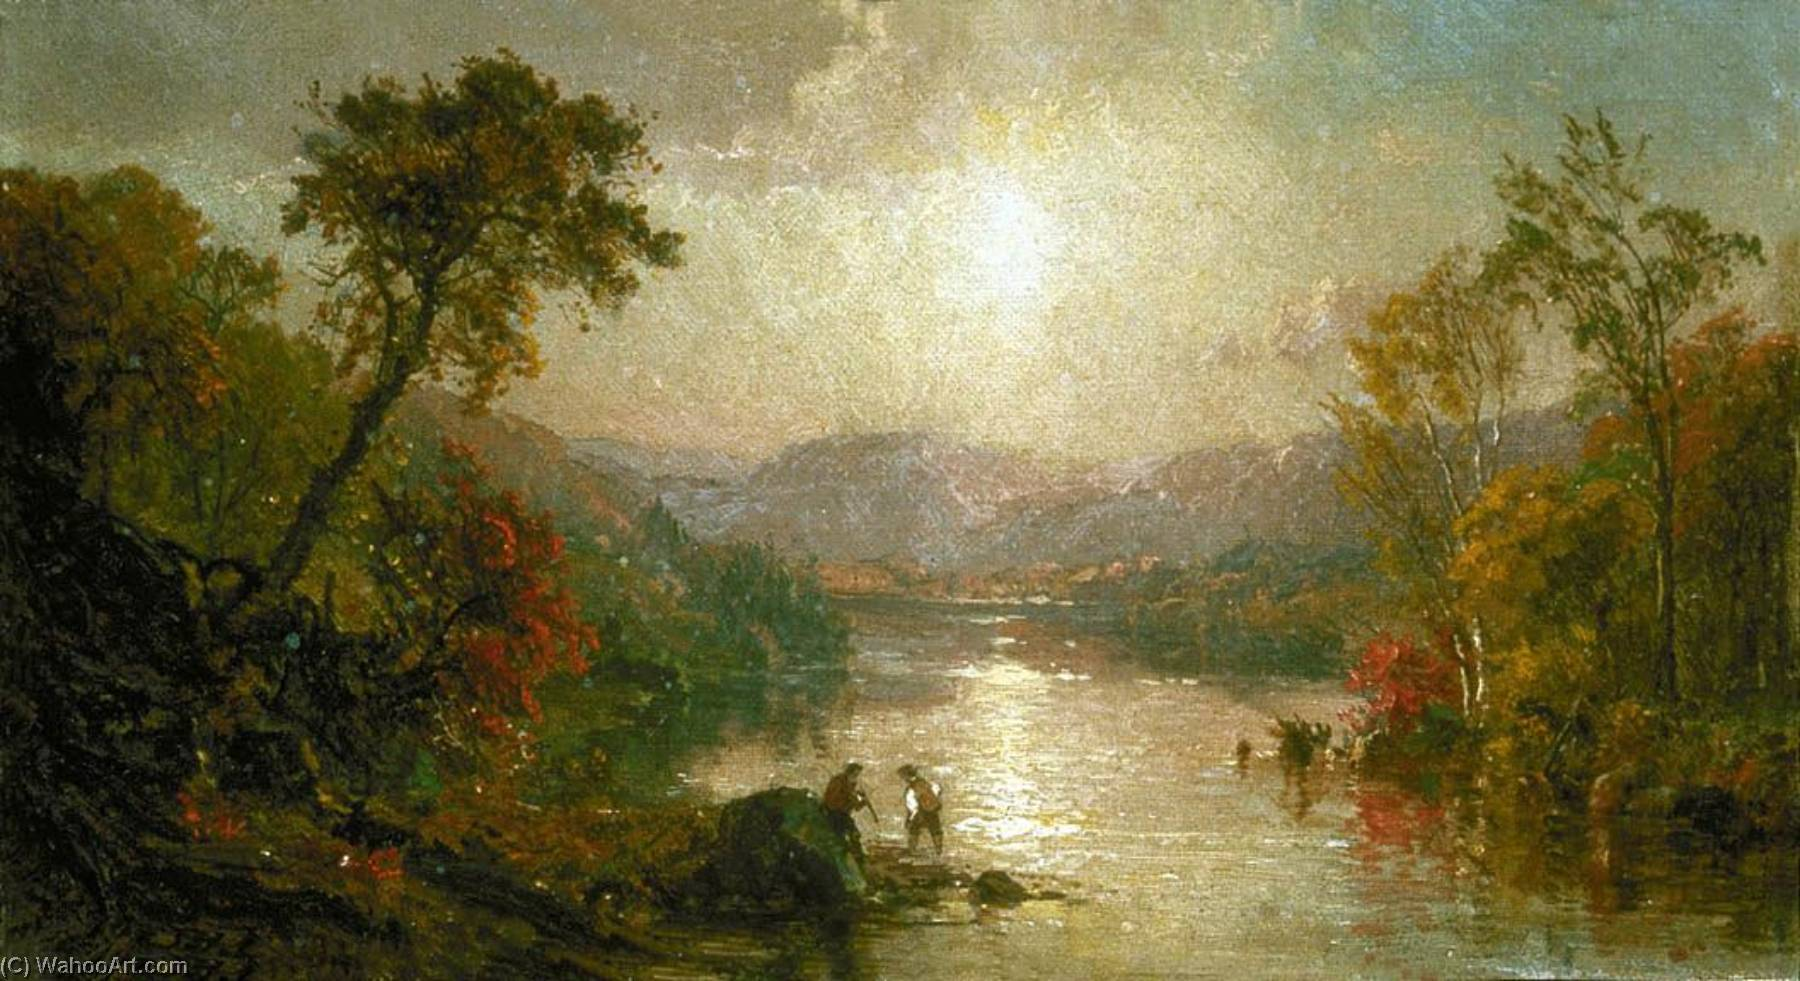 Indian Summer, 1886 by Jasper Francis Cropsey (1823-1900, United States) | Oil Painting | WahooArt.com